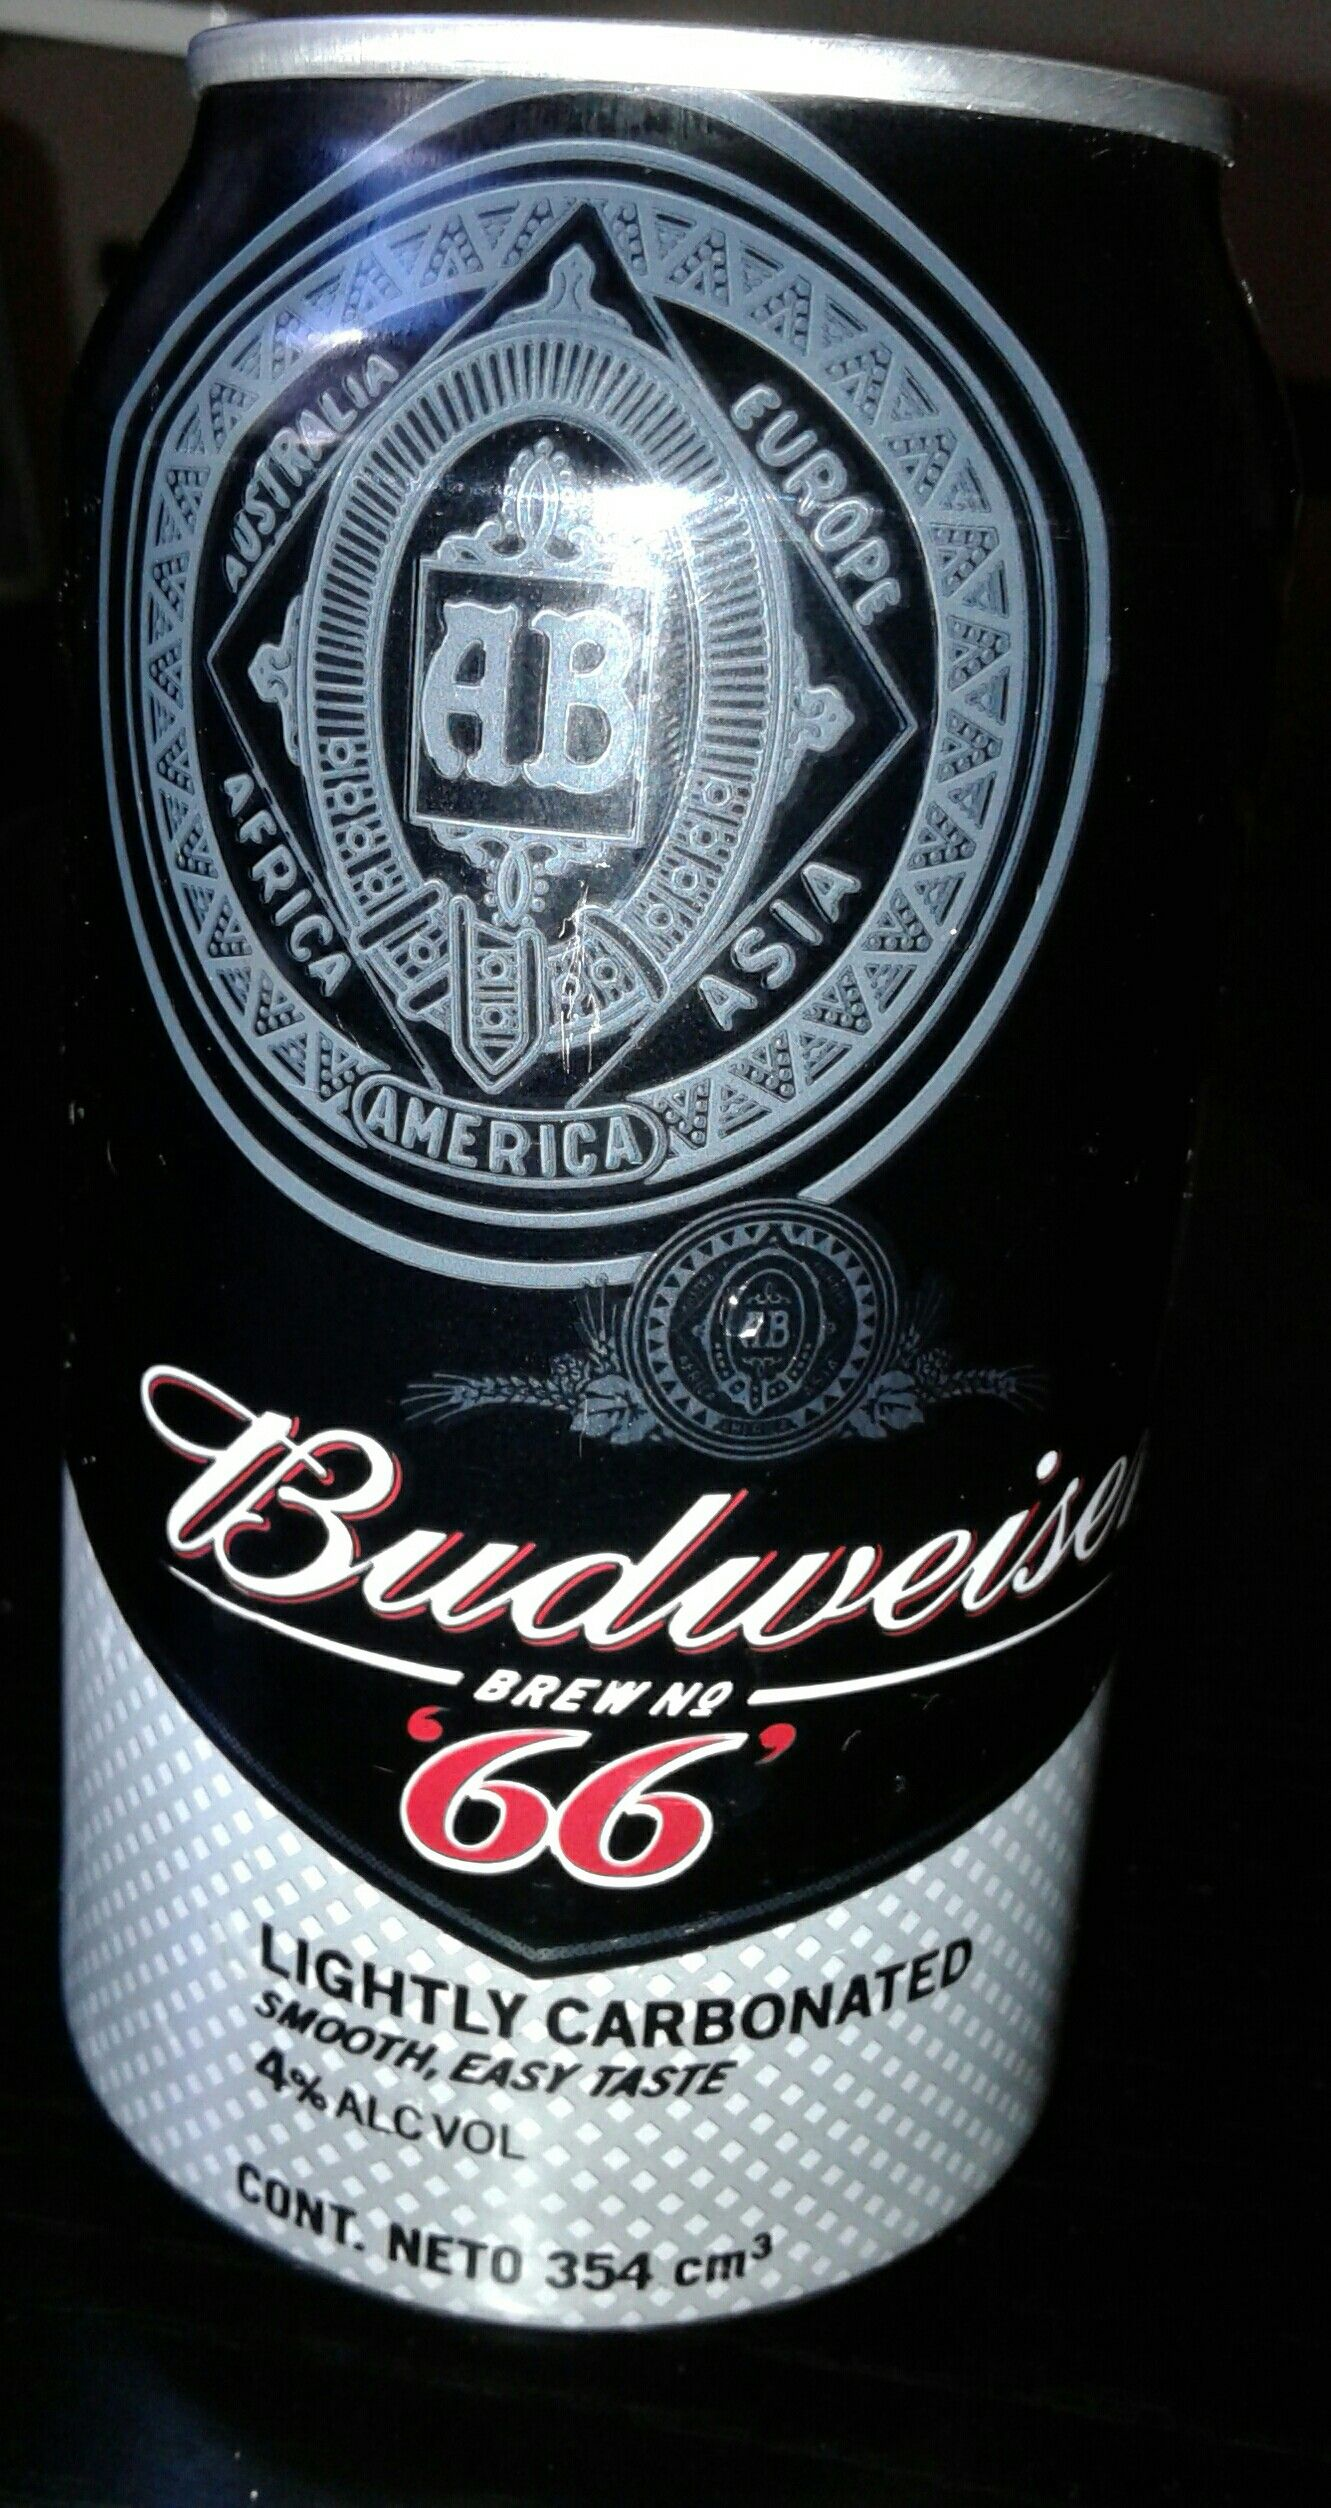 Budweiser Brew nro 66 | Beer Cans | Beer, Bottle, Brewing